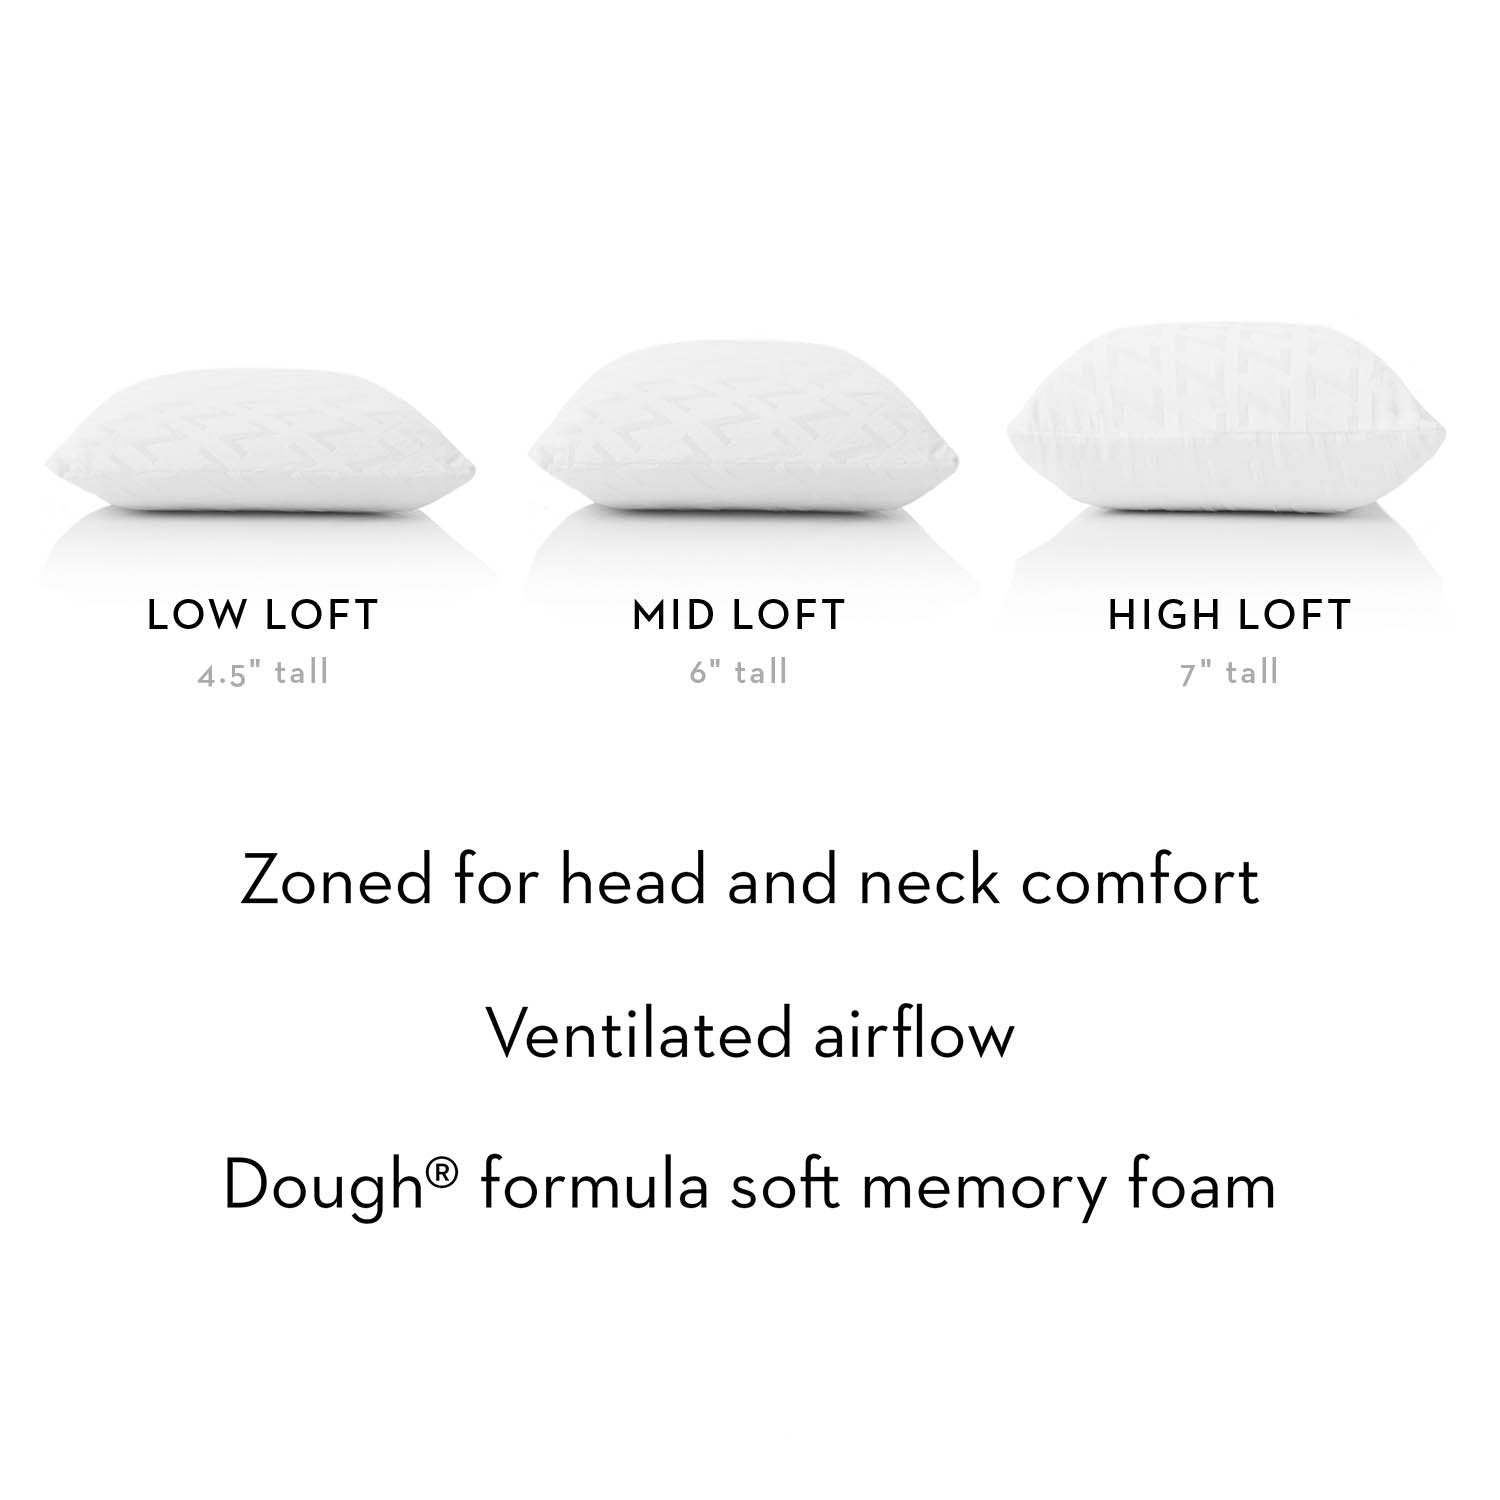 Dough - a material for amazing products